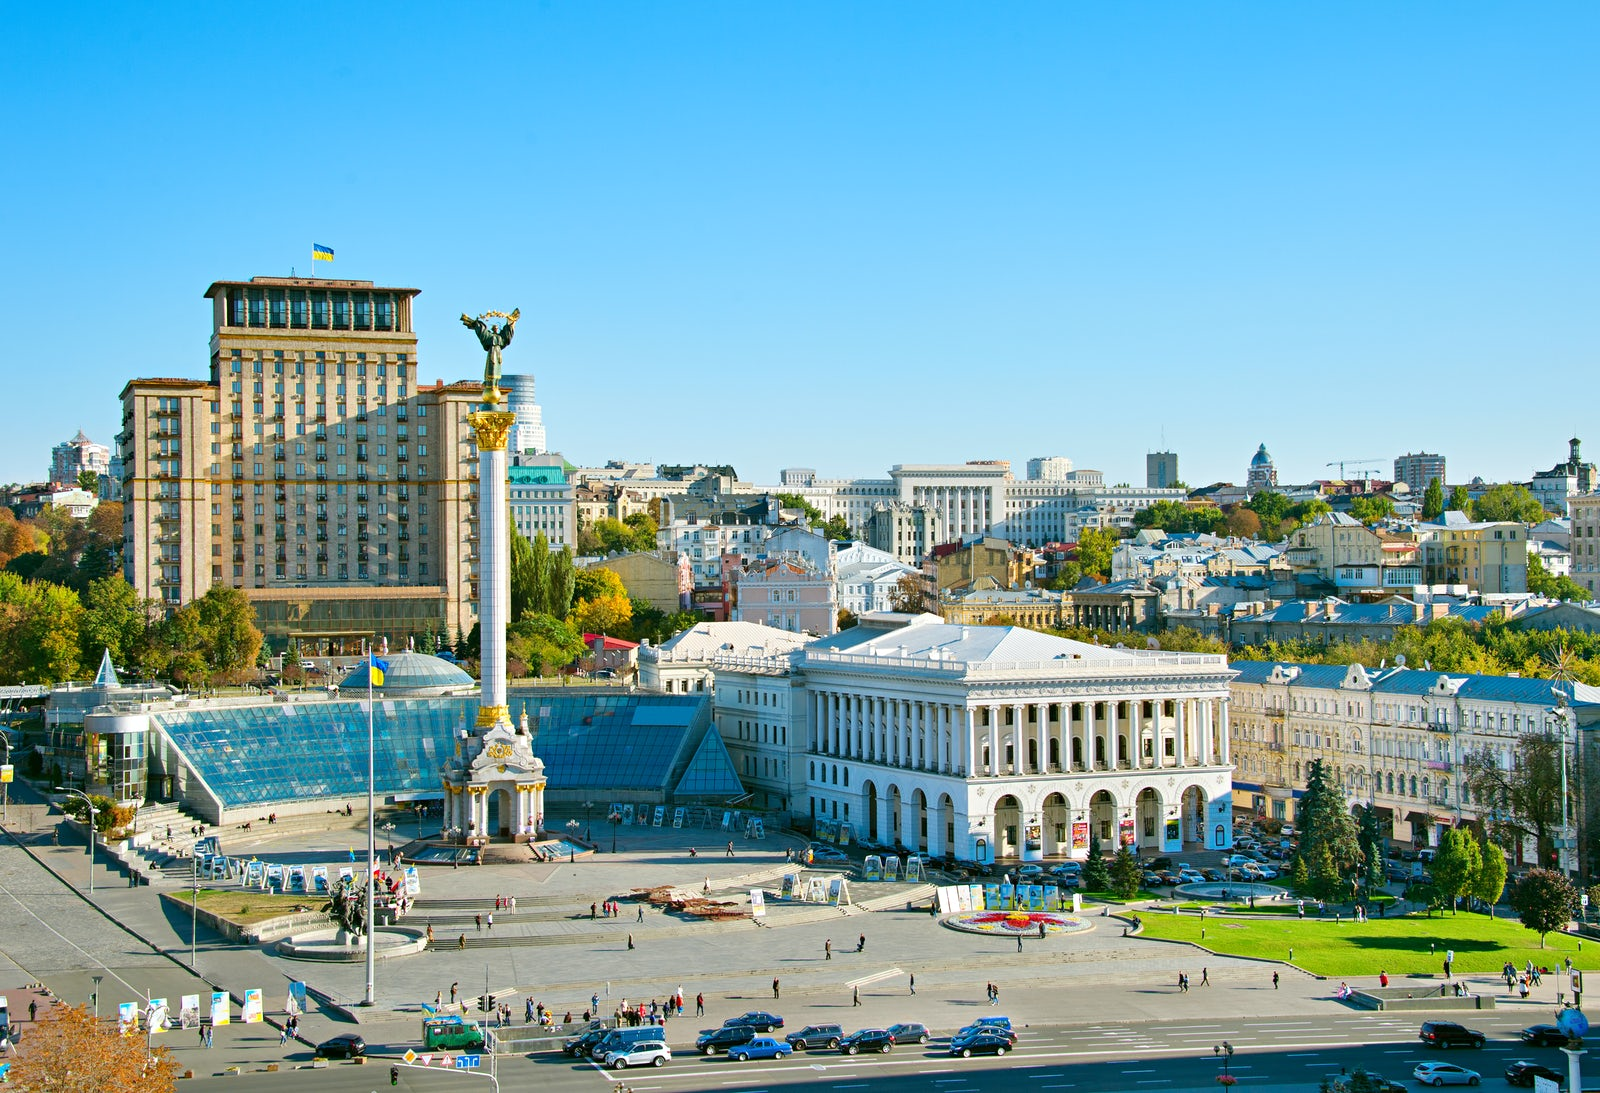 !i18n:es:data.cities:kyiv.picture.caption